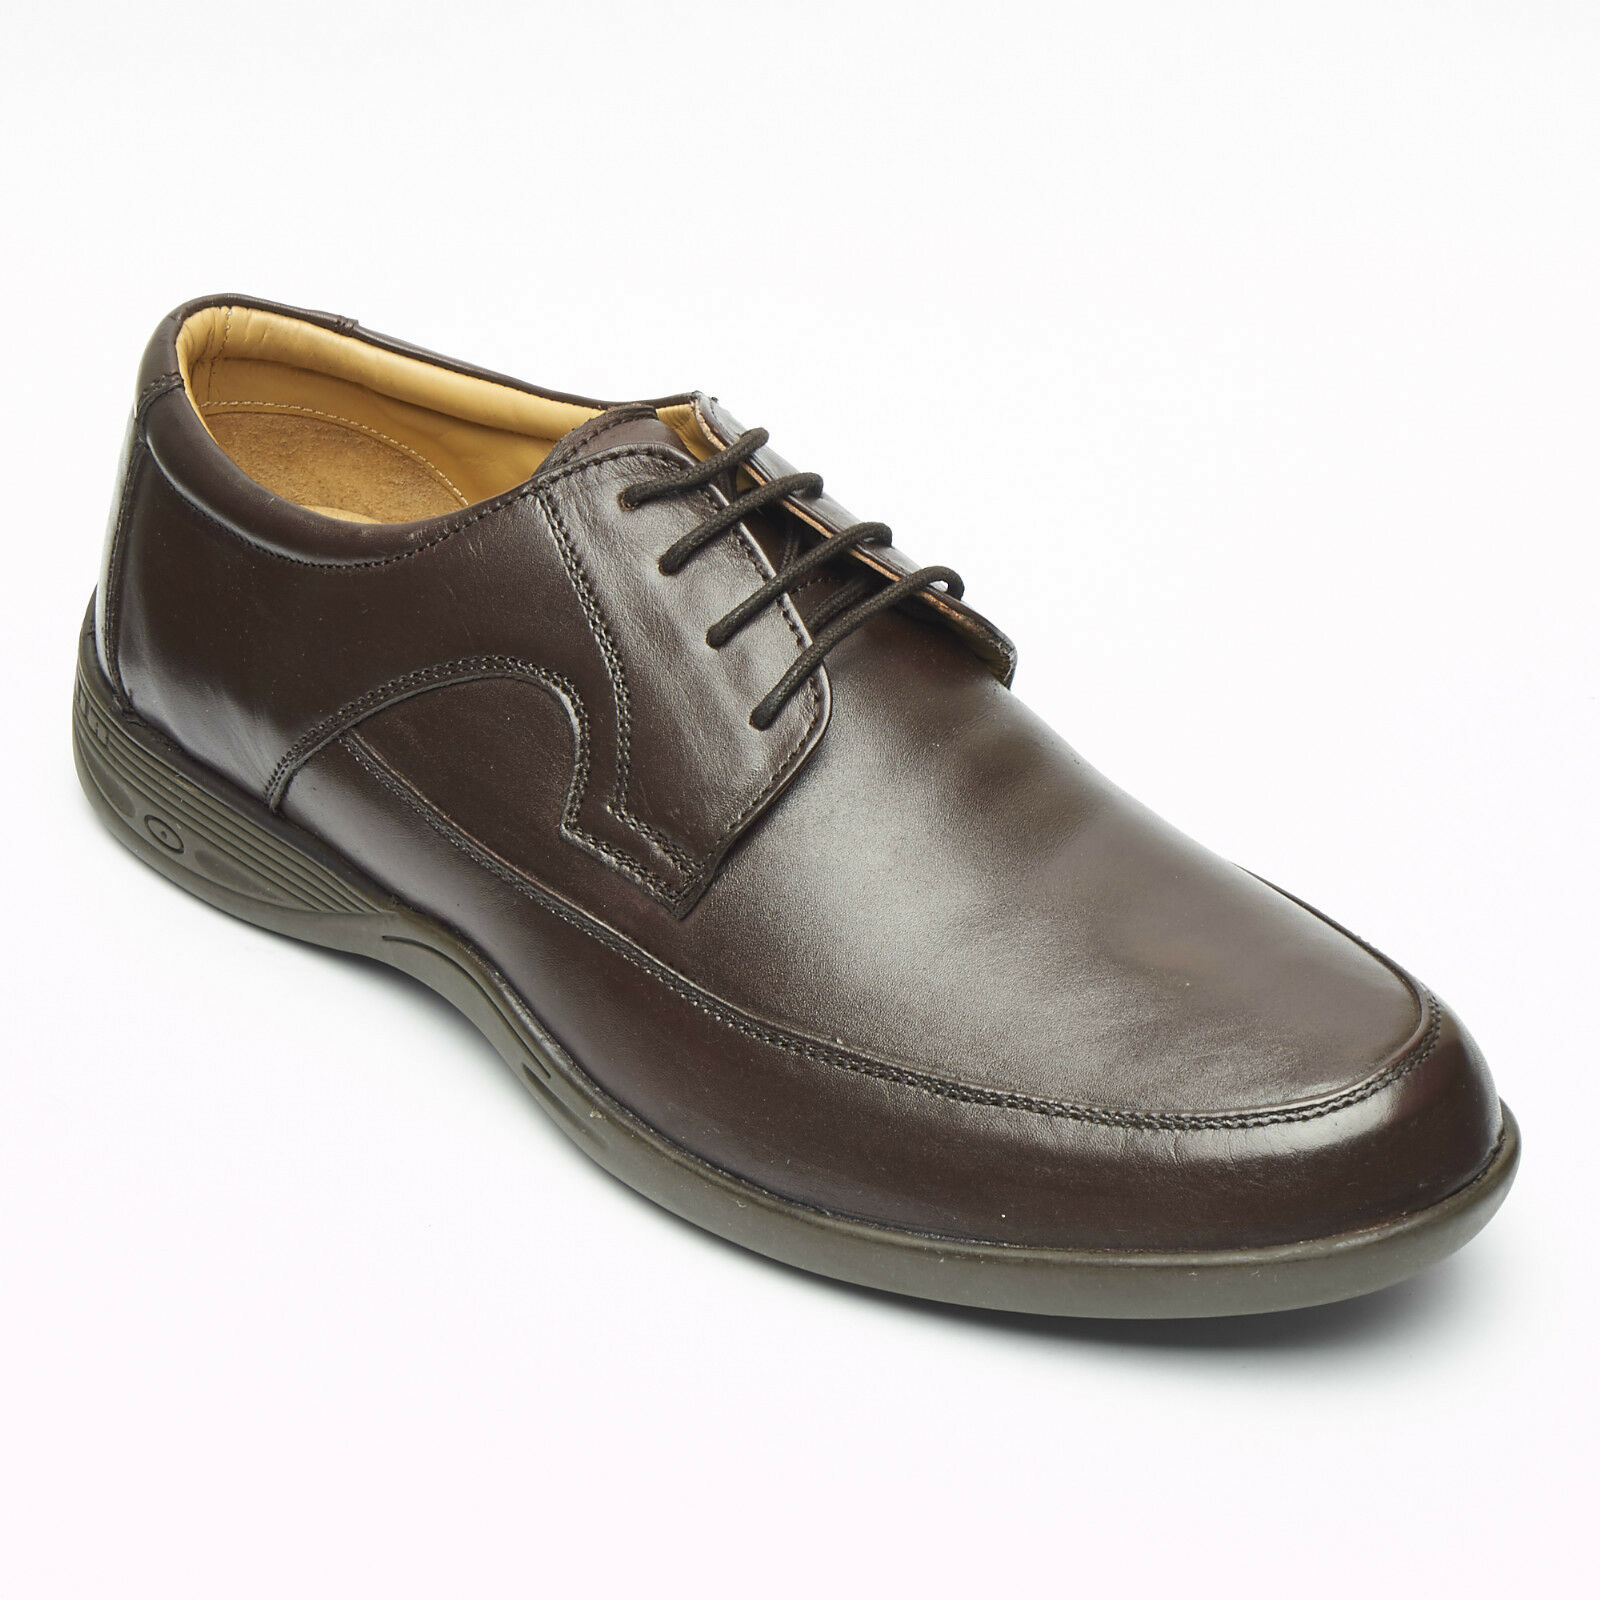 Men's Lucini Lace Up Leather Smart Comfort Formal Shoe